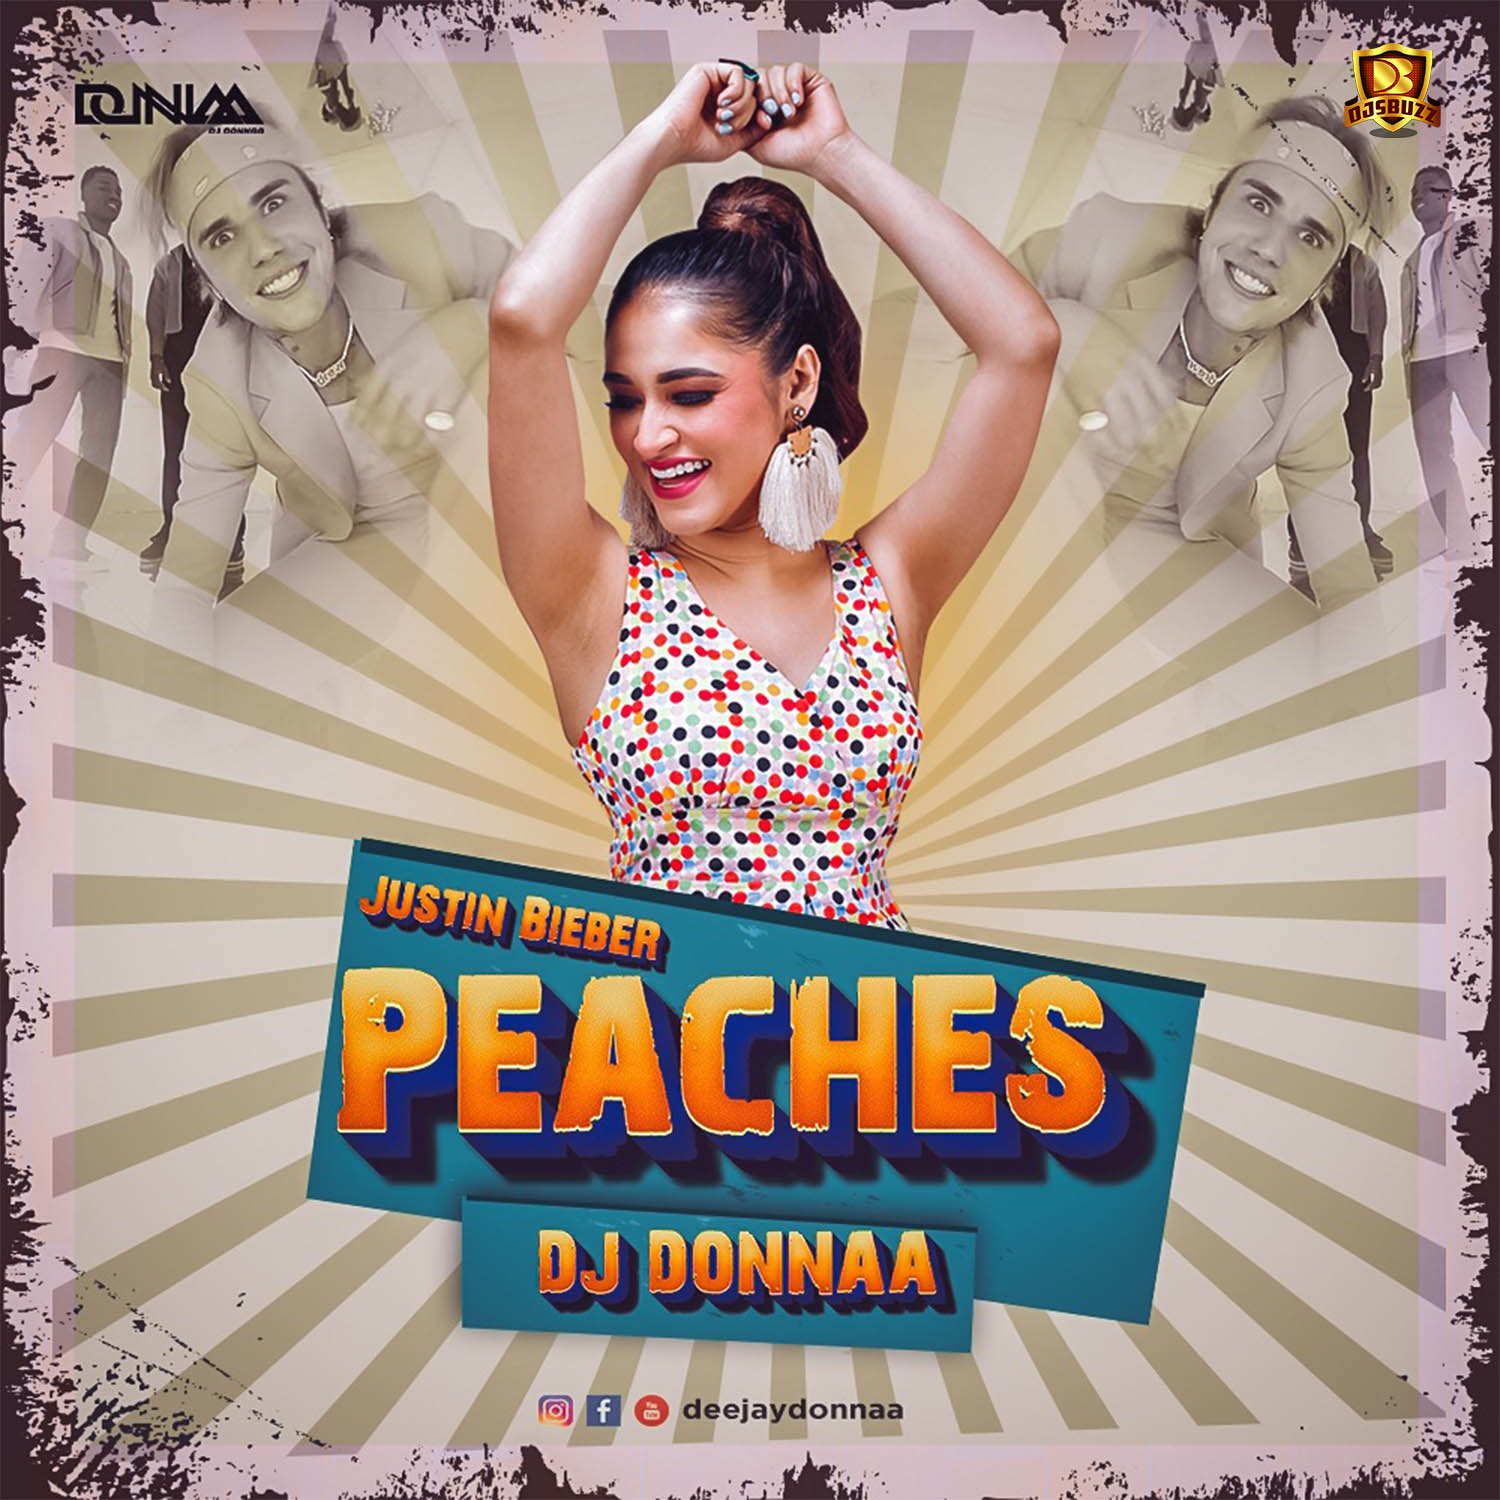 Justin Bieber – Peaches (Remix) – DJ DONNAA